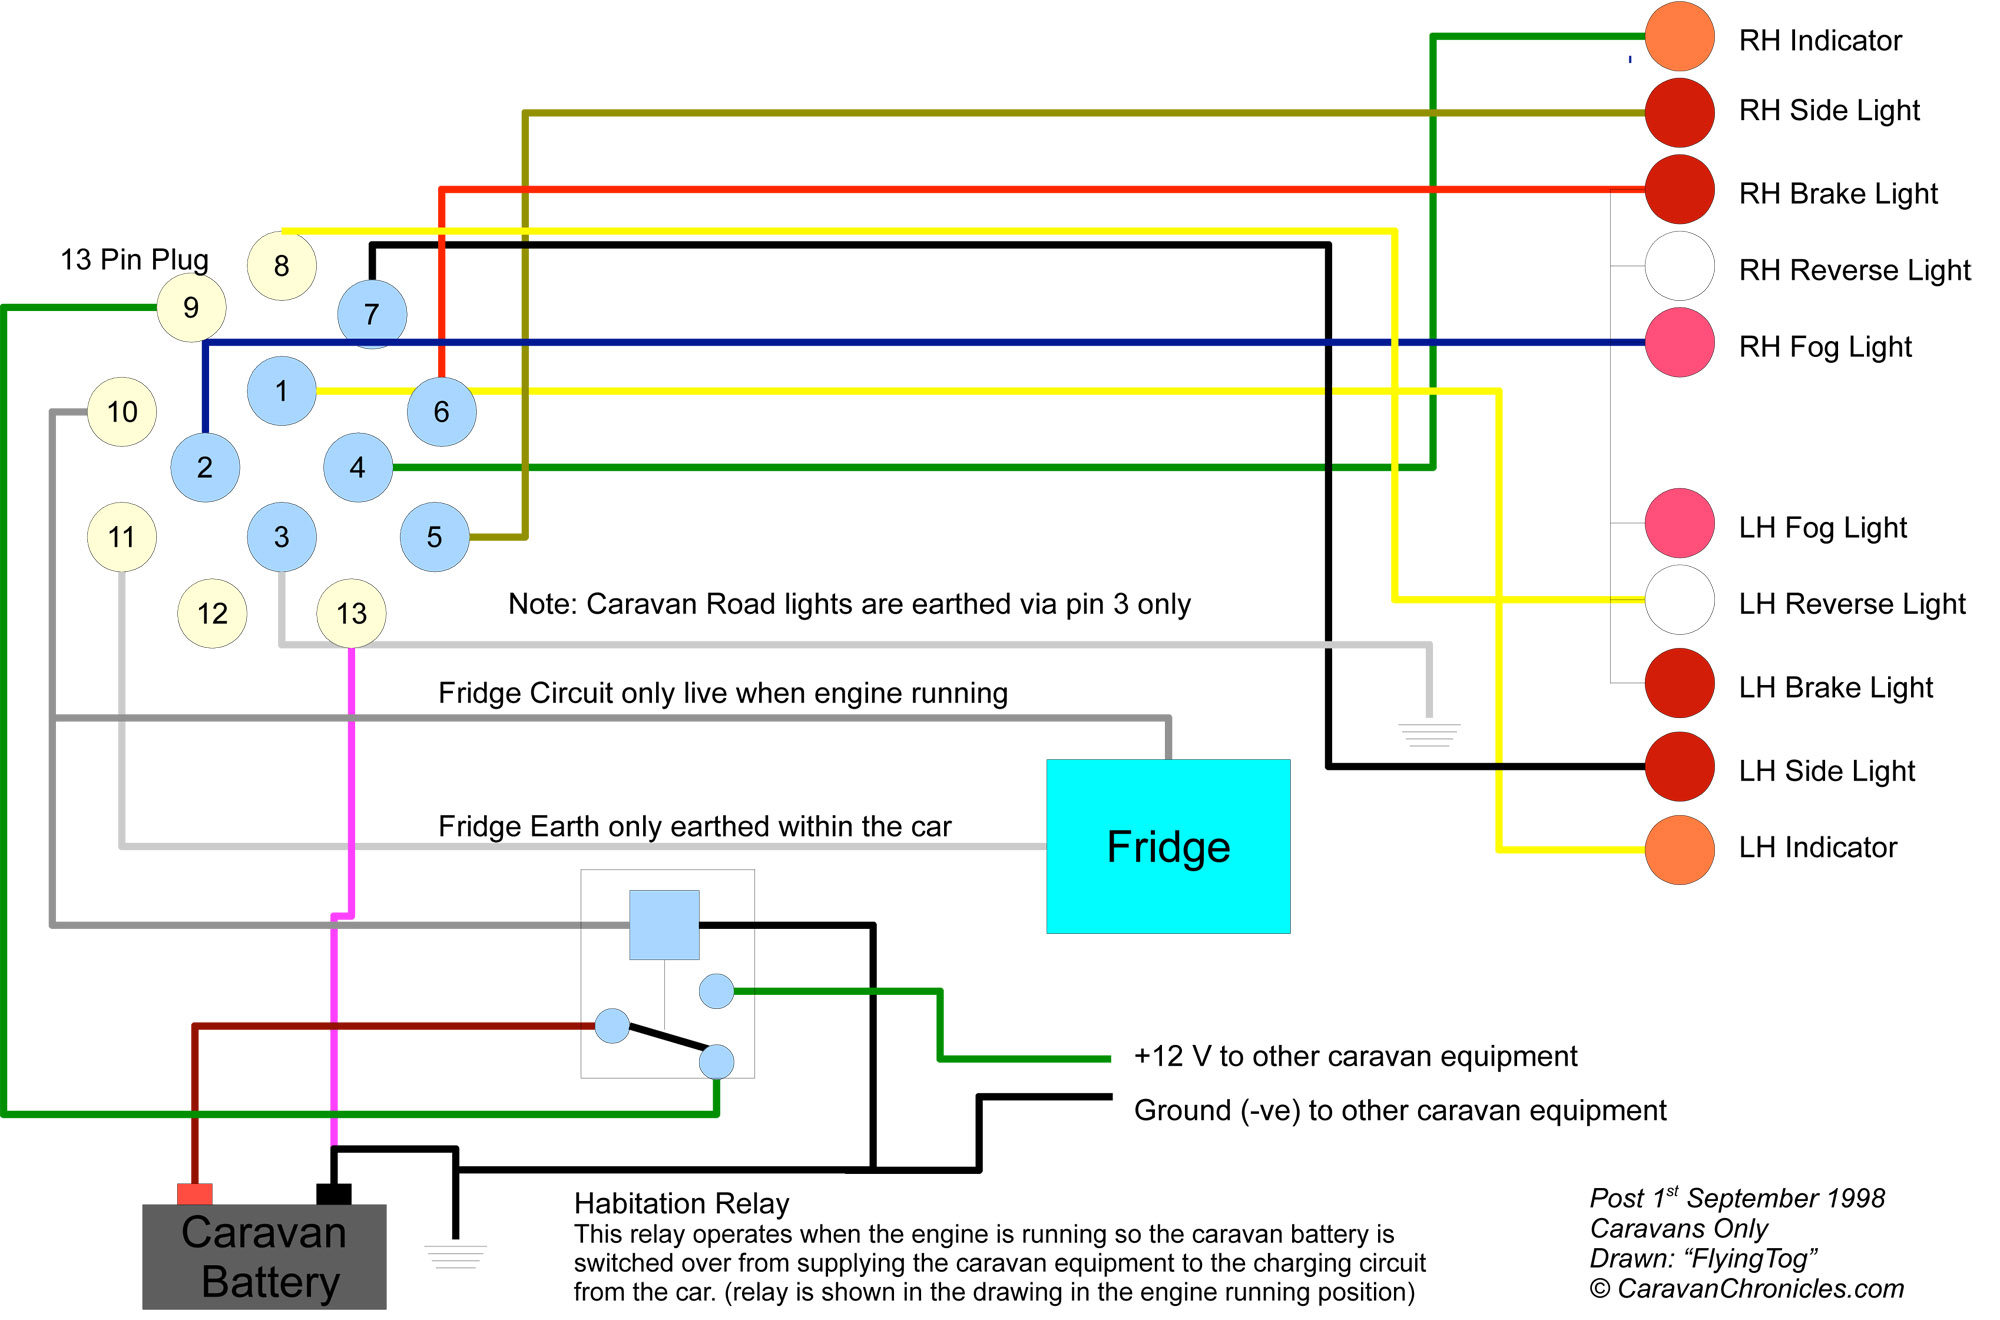 caravan wiring 13 pin understanding the leisure battery charging circuit caravan pms4 power management system wiring diagram at fashall.co